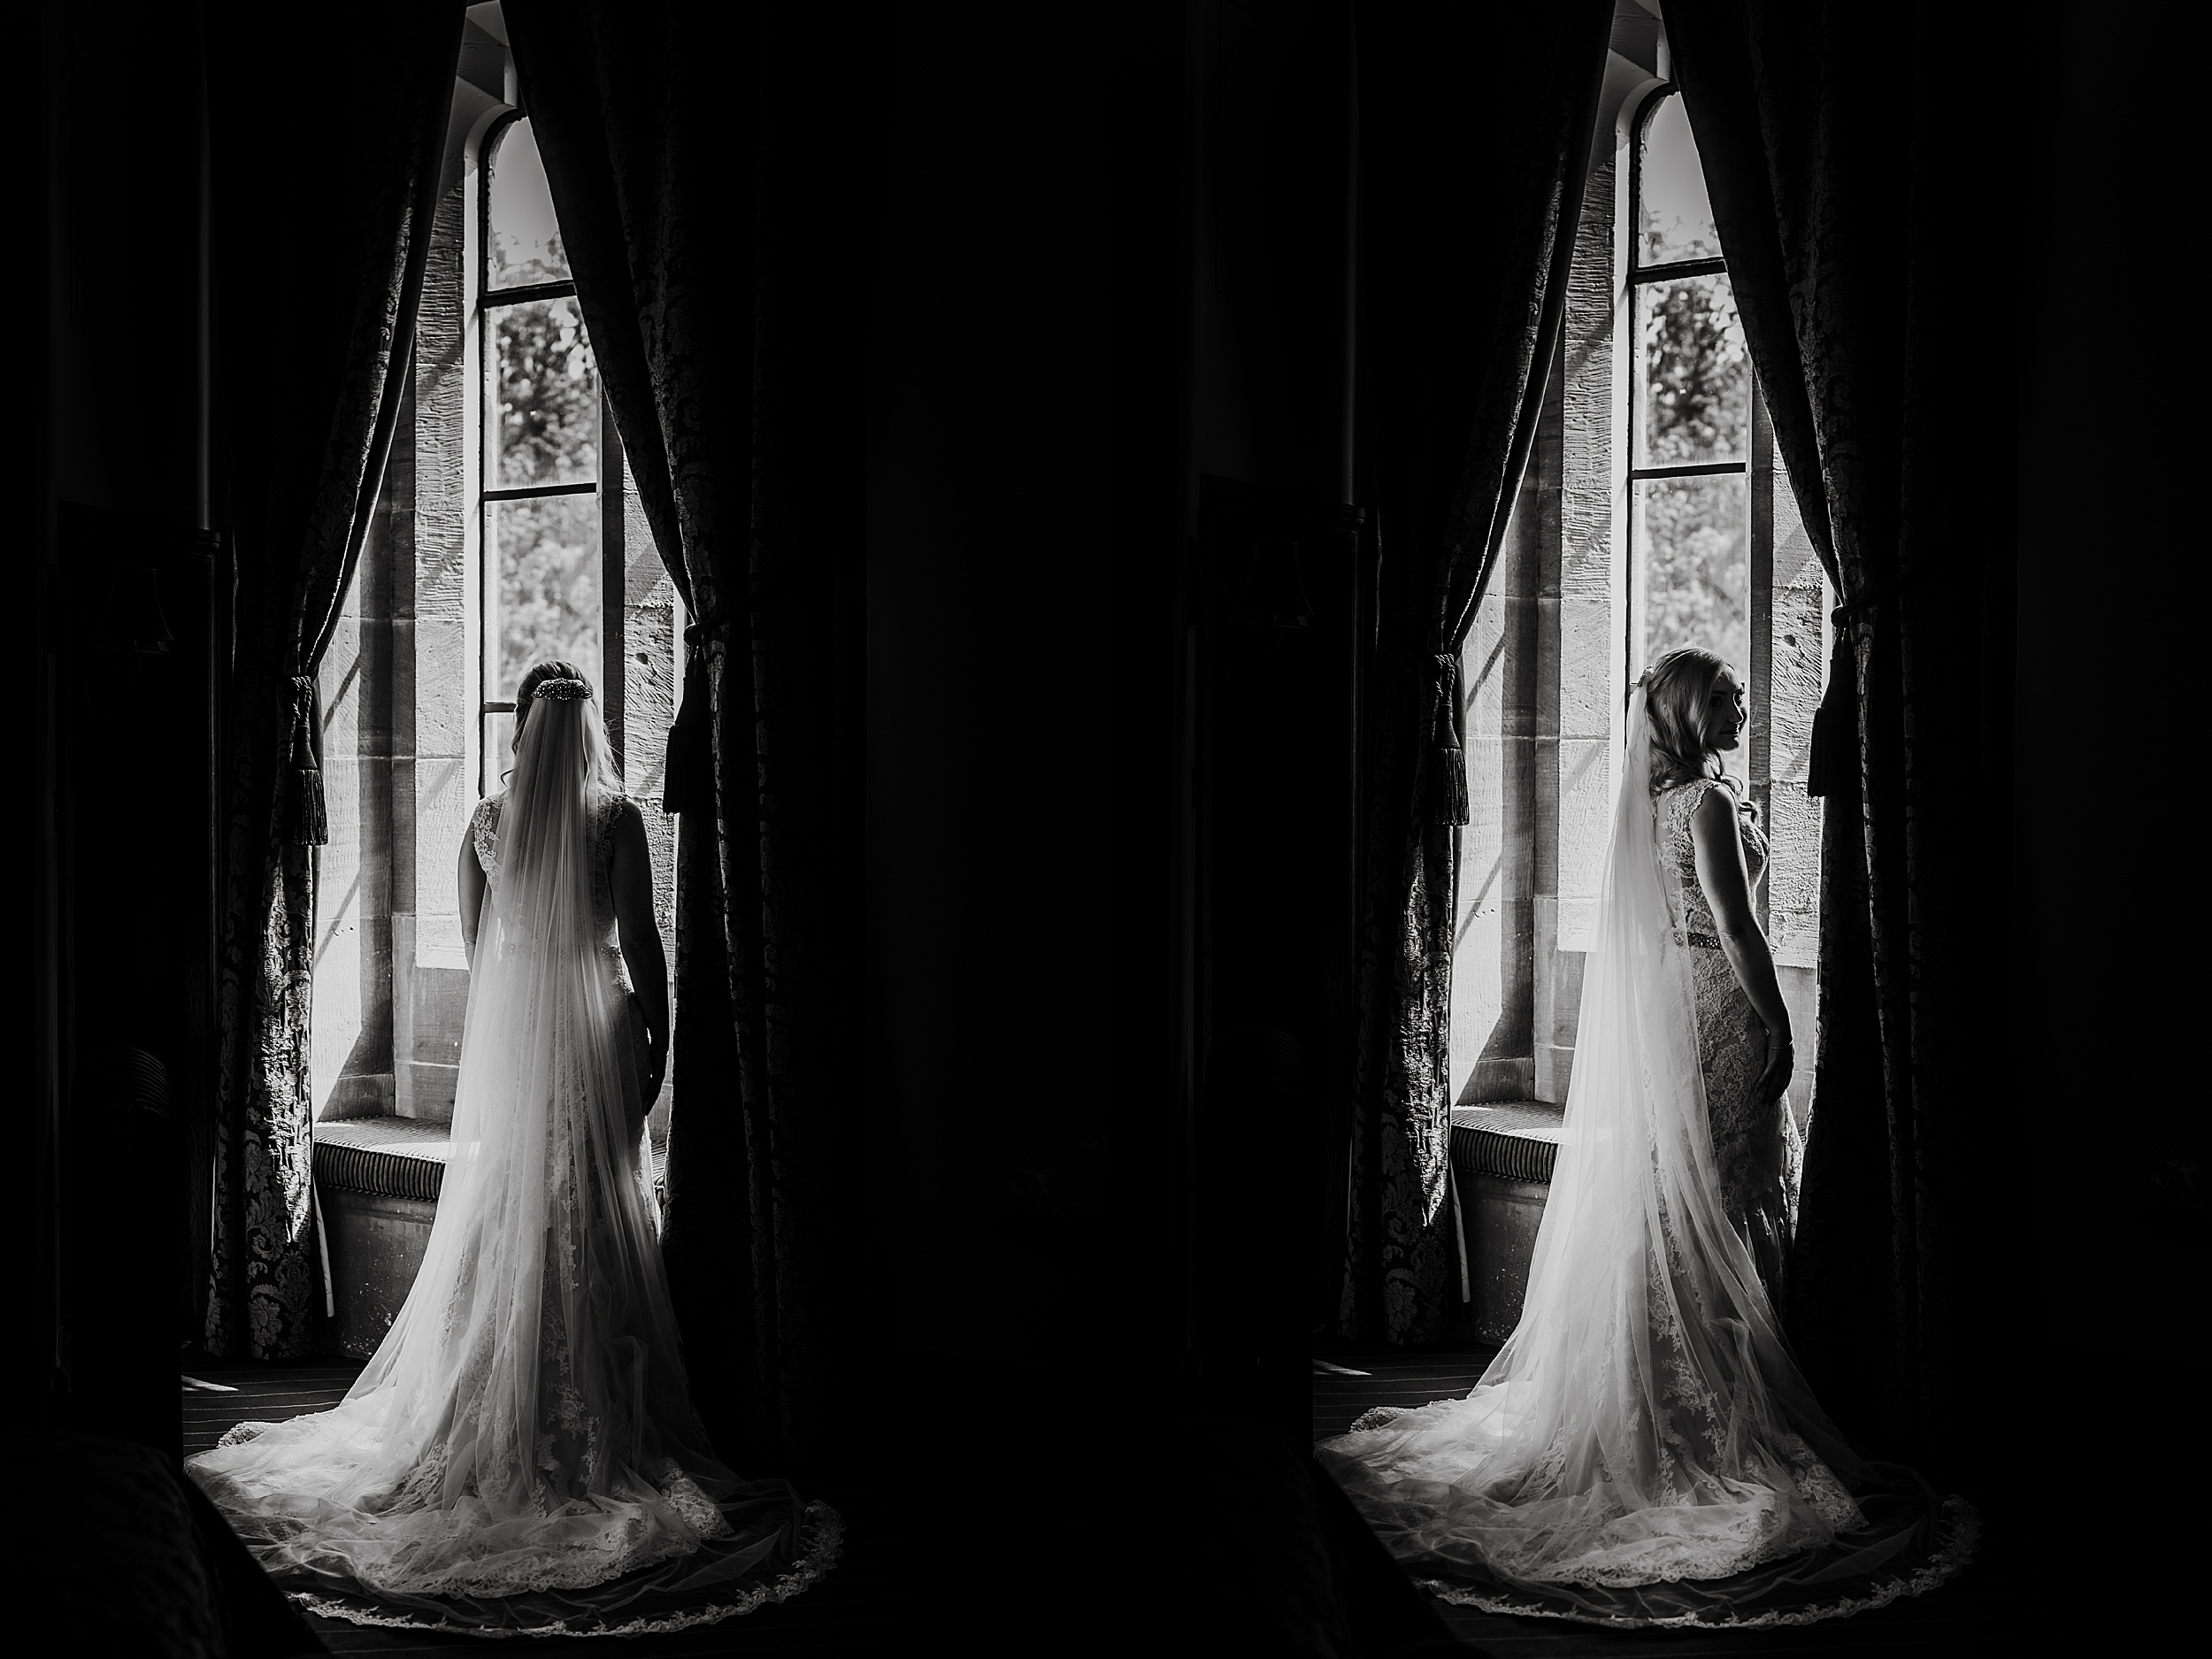 Peckforton_Castle_Cheshire_Toronto_Wedding_Photographer_UK_Destination_Wedding_0016.jpg